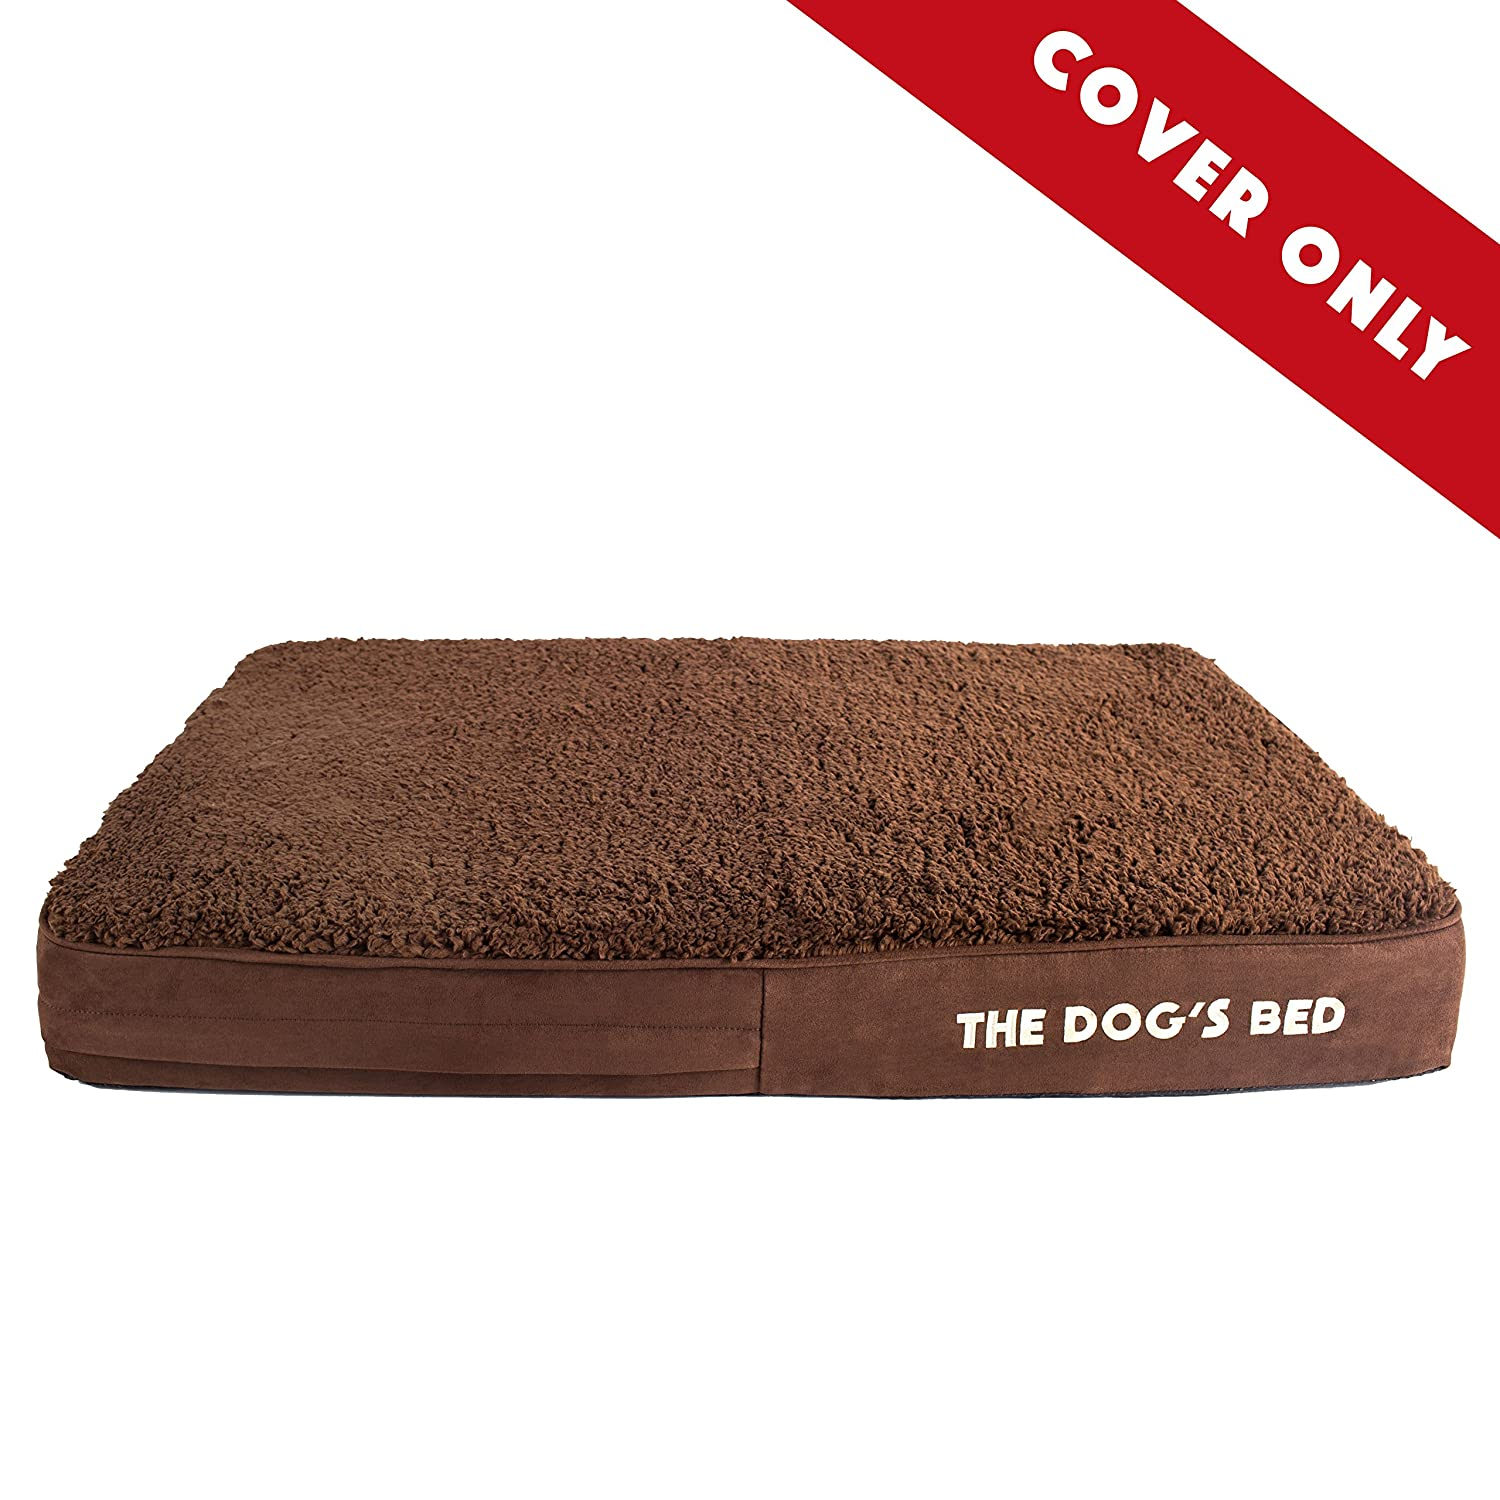 Brown Plush Medium Cover Brown Plush Medium Cover Replacement Outer Cover ONLY (Outer Cover ONLY NO Bed, NO Waterproof Inner) for The Dog's Bed, Washable Quality Plush Fabric, Medium 34  x 22  x 4  (Brown Plush)